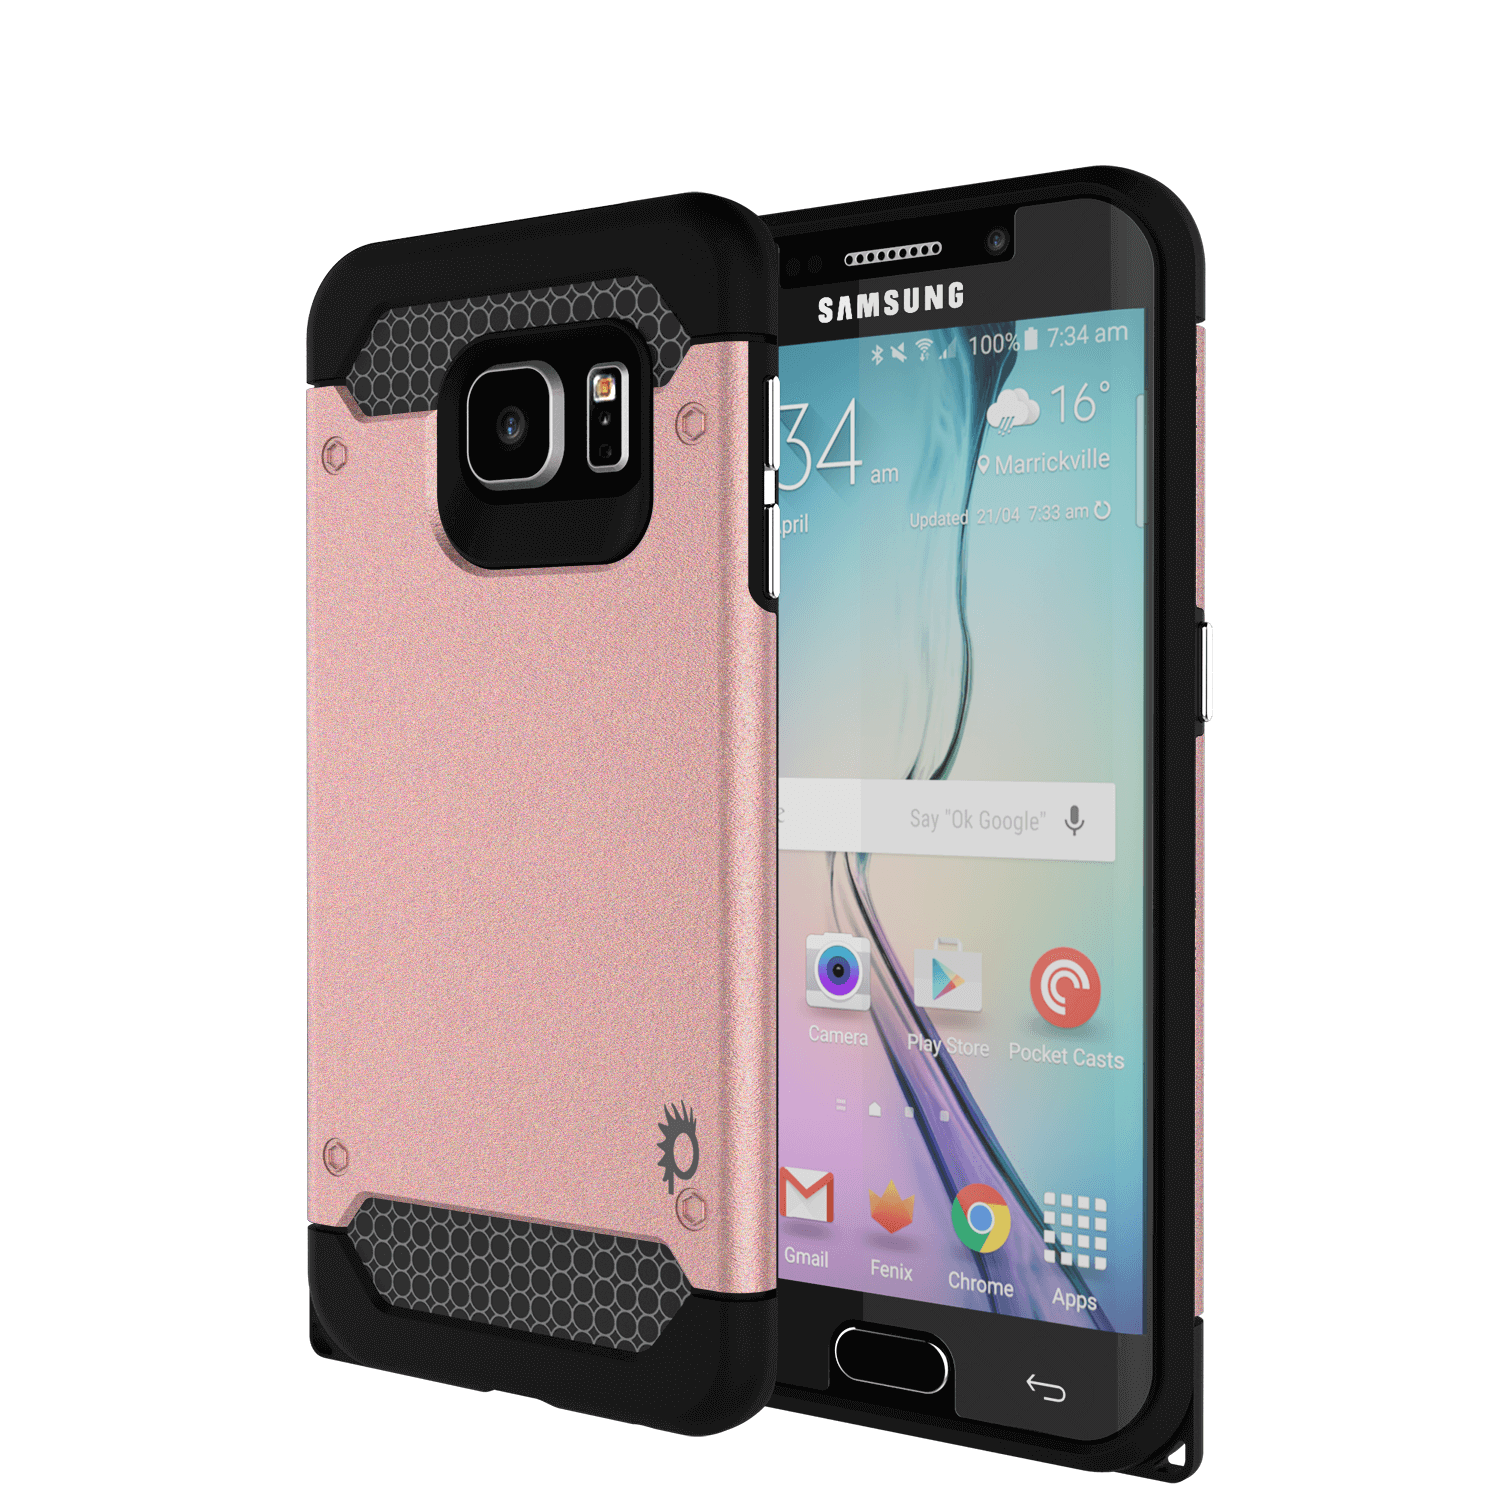 Galaxy s6 EDGE Case PunkCase Galactic Rose Gold Series Slim Armor Soft Cover w/ Screen Protector